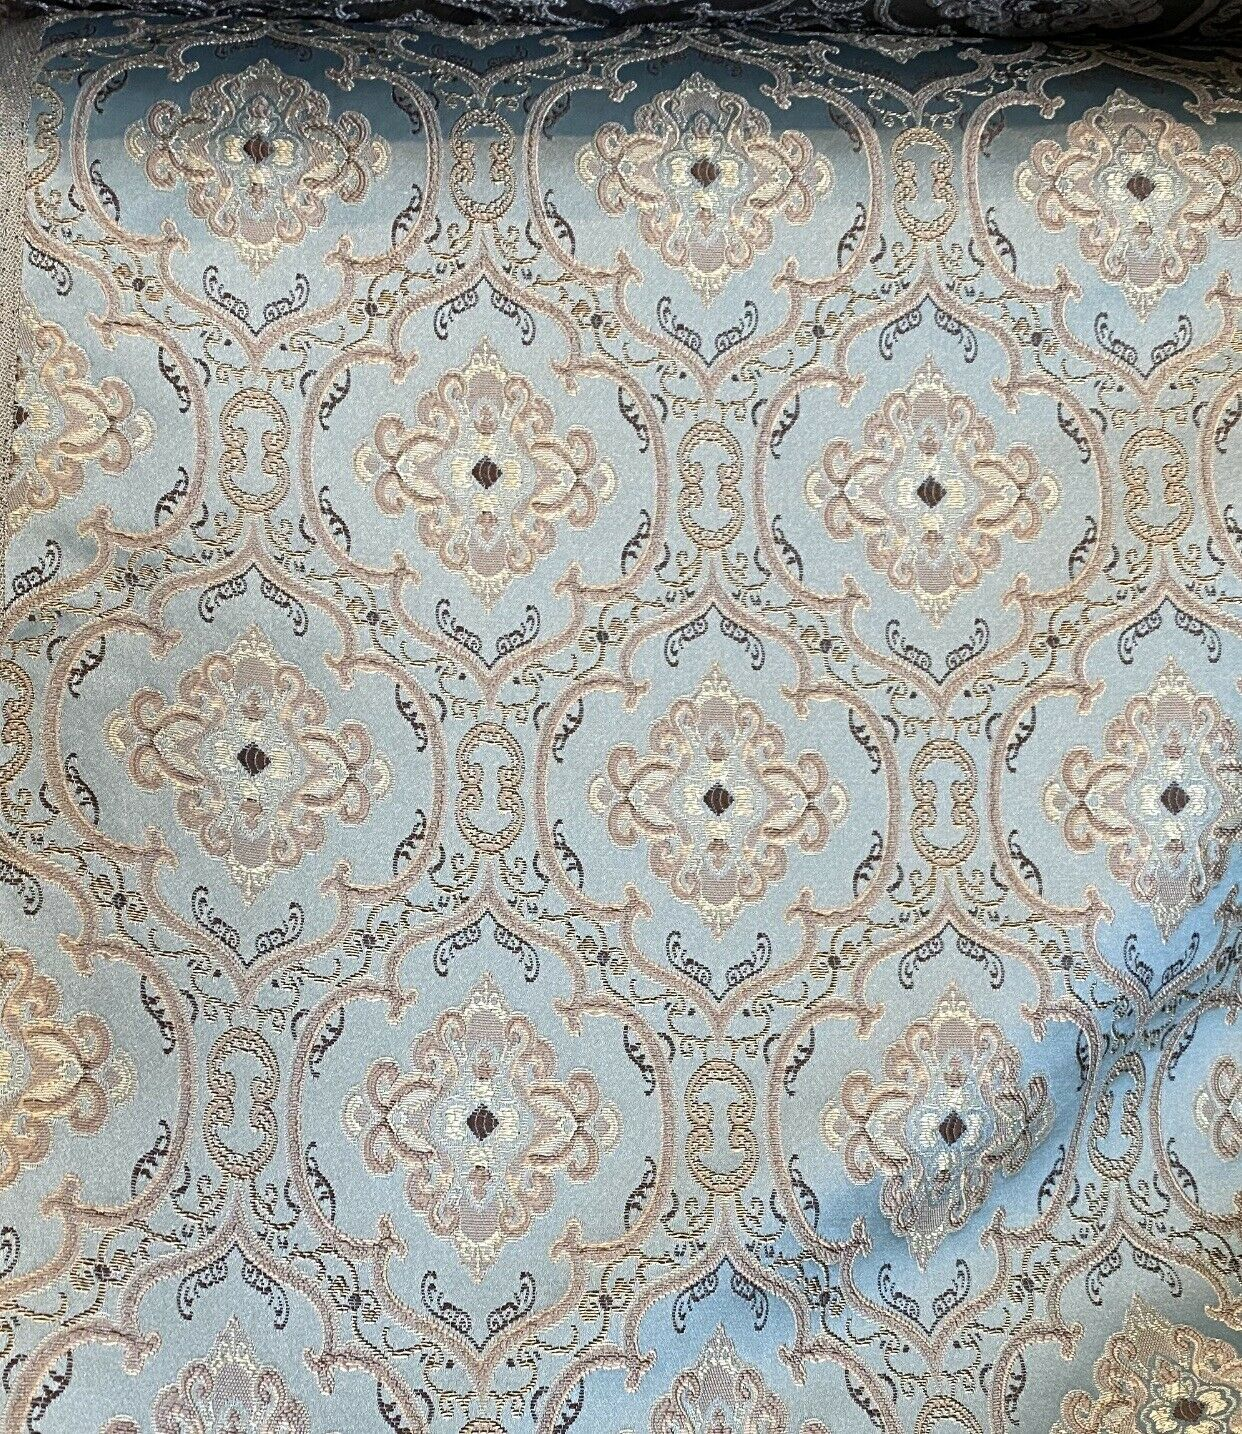 NEW! Designer Brocade Satin Damask Drapery & Upholstery Fabric- Duck Egg Blue